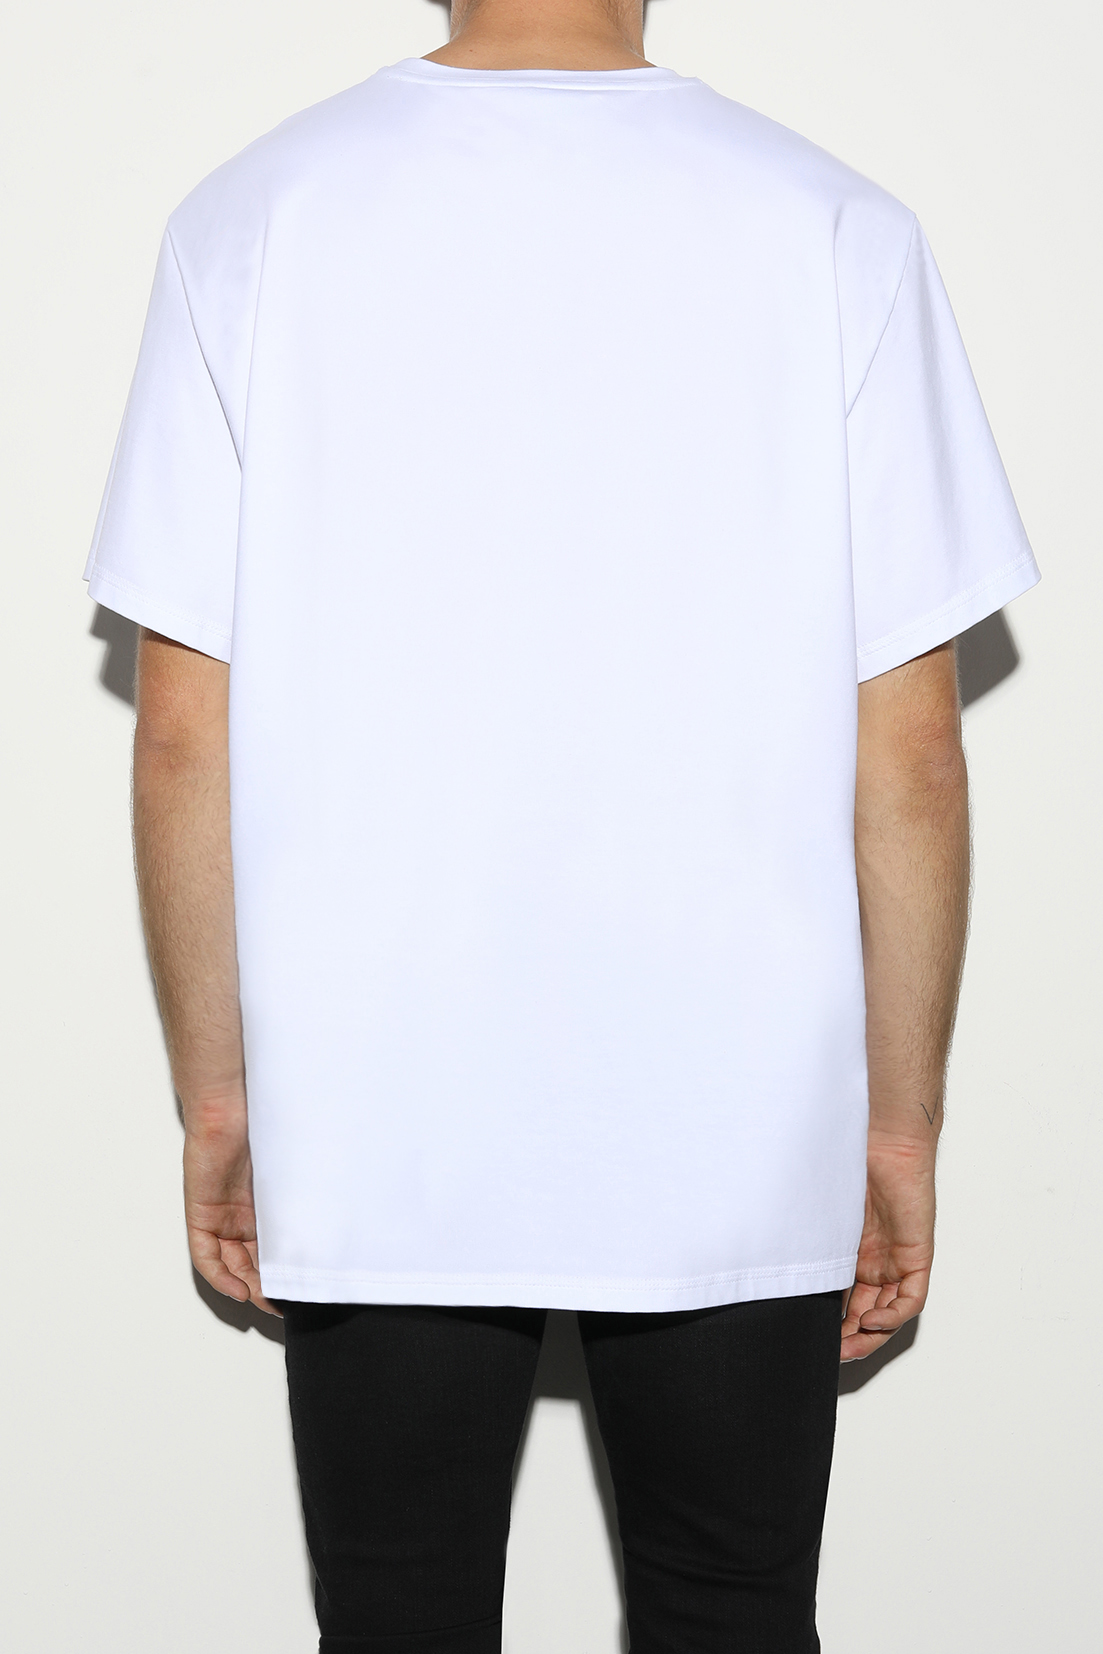 White t-shirt for men and women by designer Stefan Eckert, made of organic cotton, sustainably produced in Germany